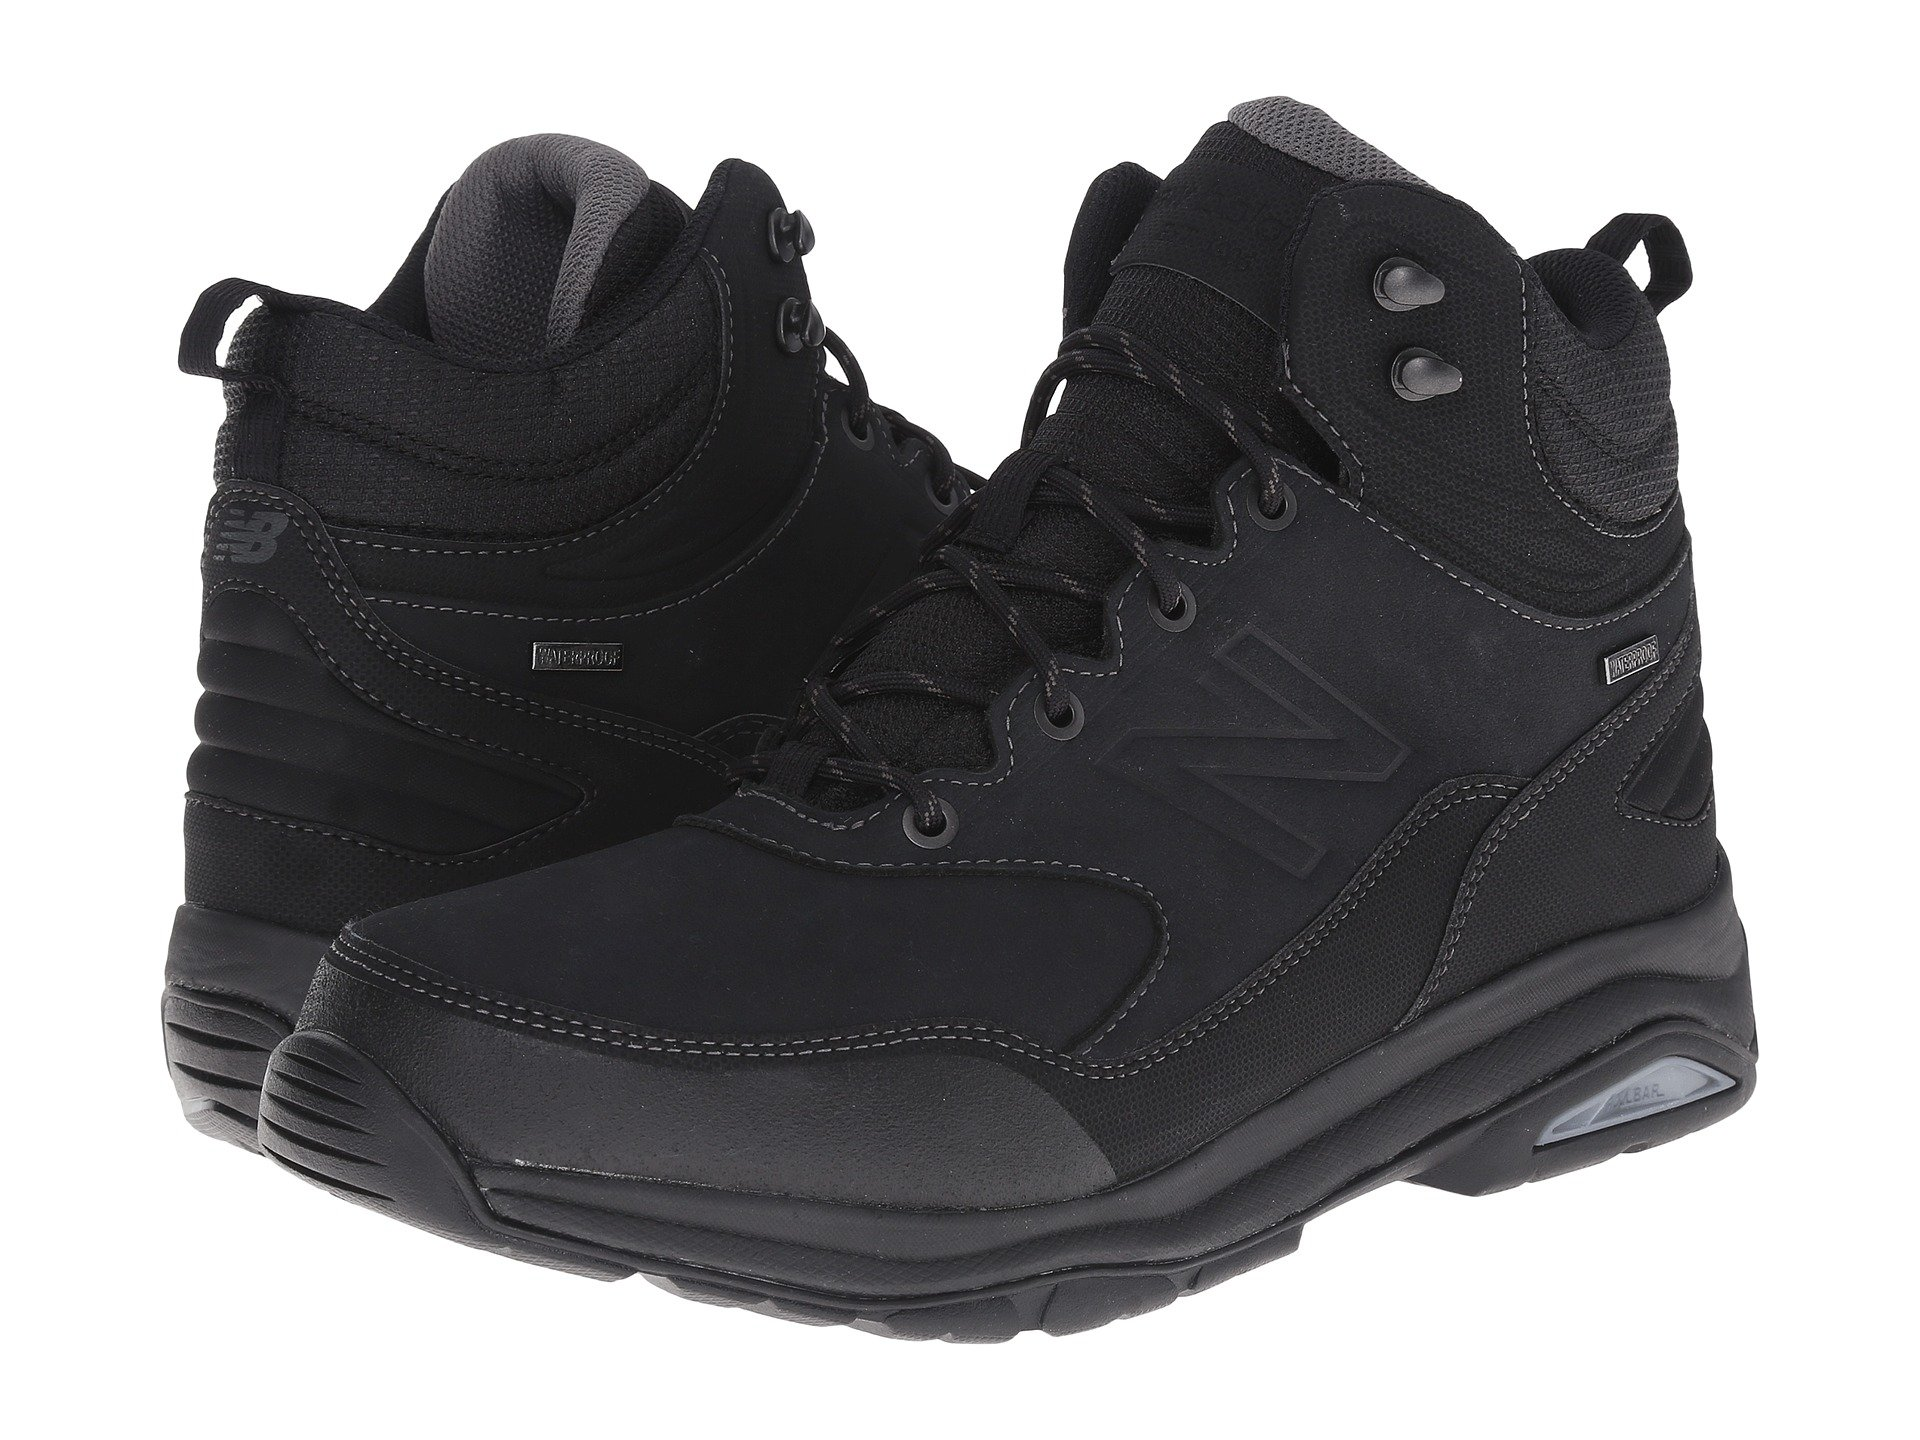 9dc7832093d0 Men s Boots + FREE SHIPPING